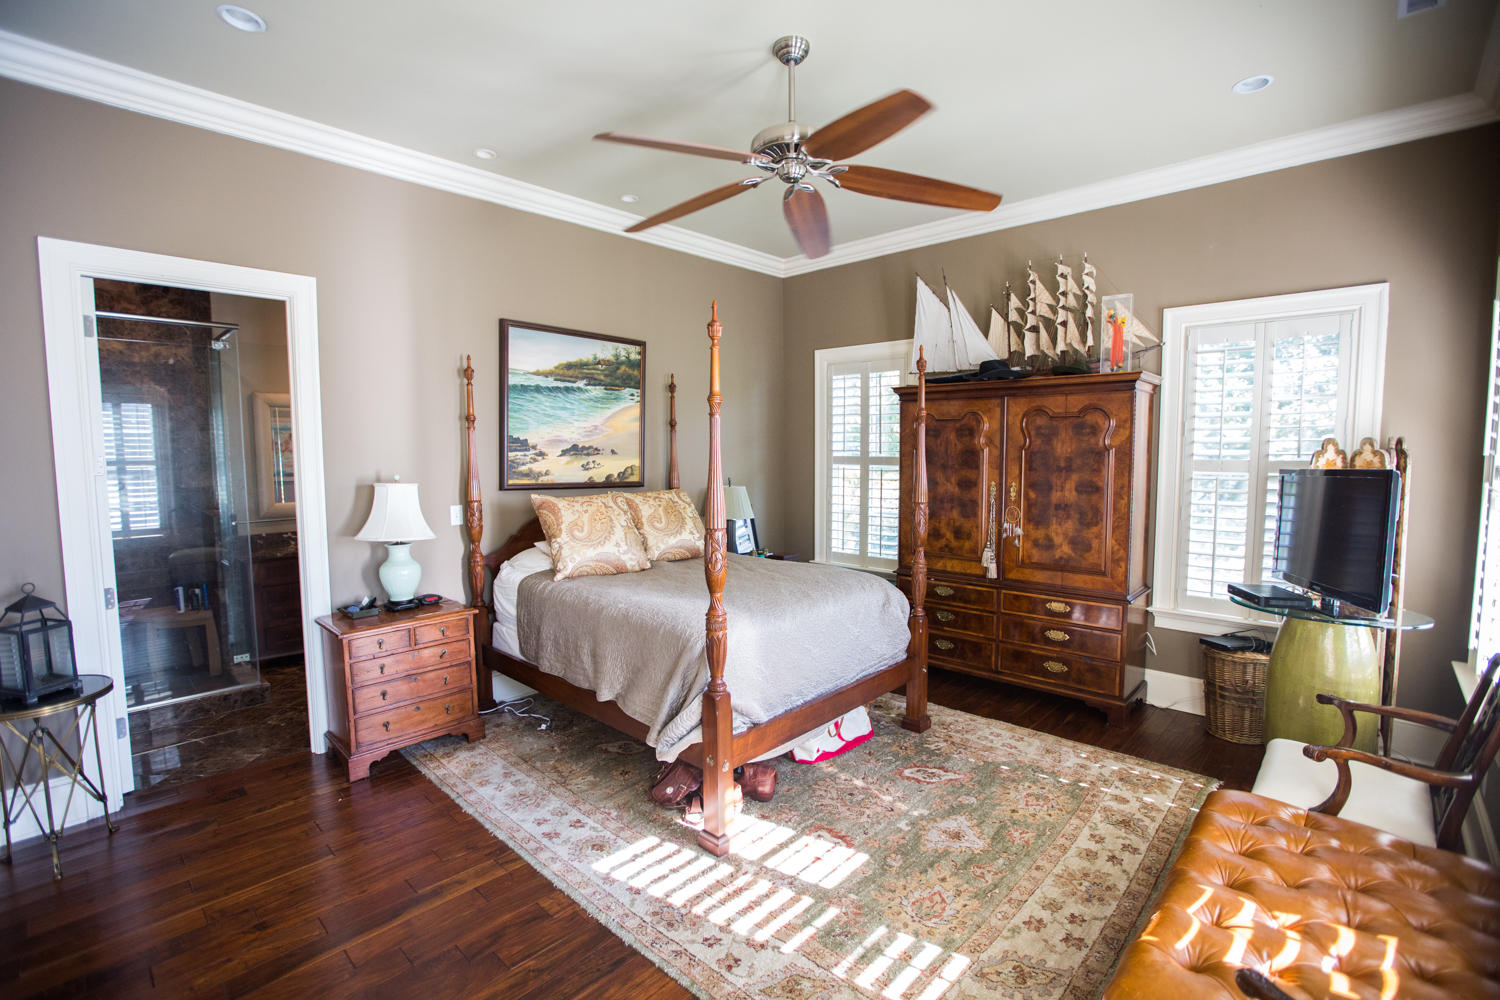 Edgewater Park Homes For Sale - 120 Edgewater, Charleston, SC - 10